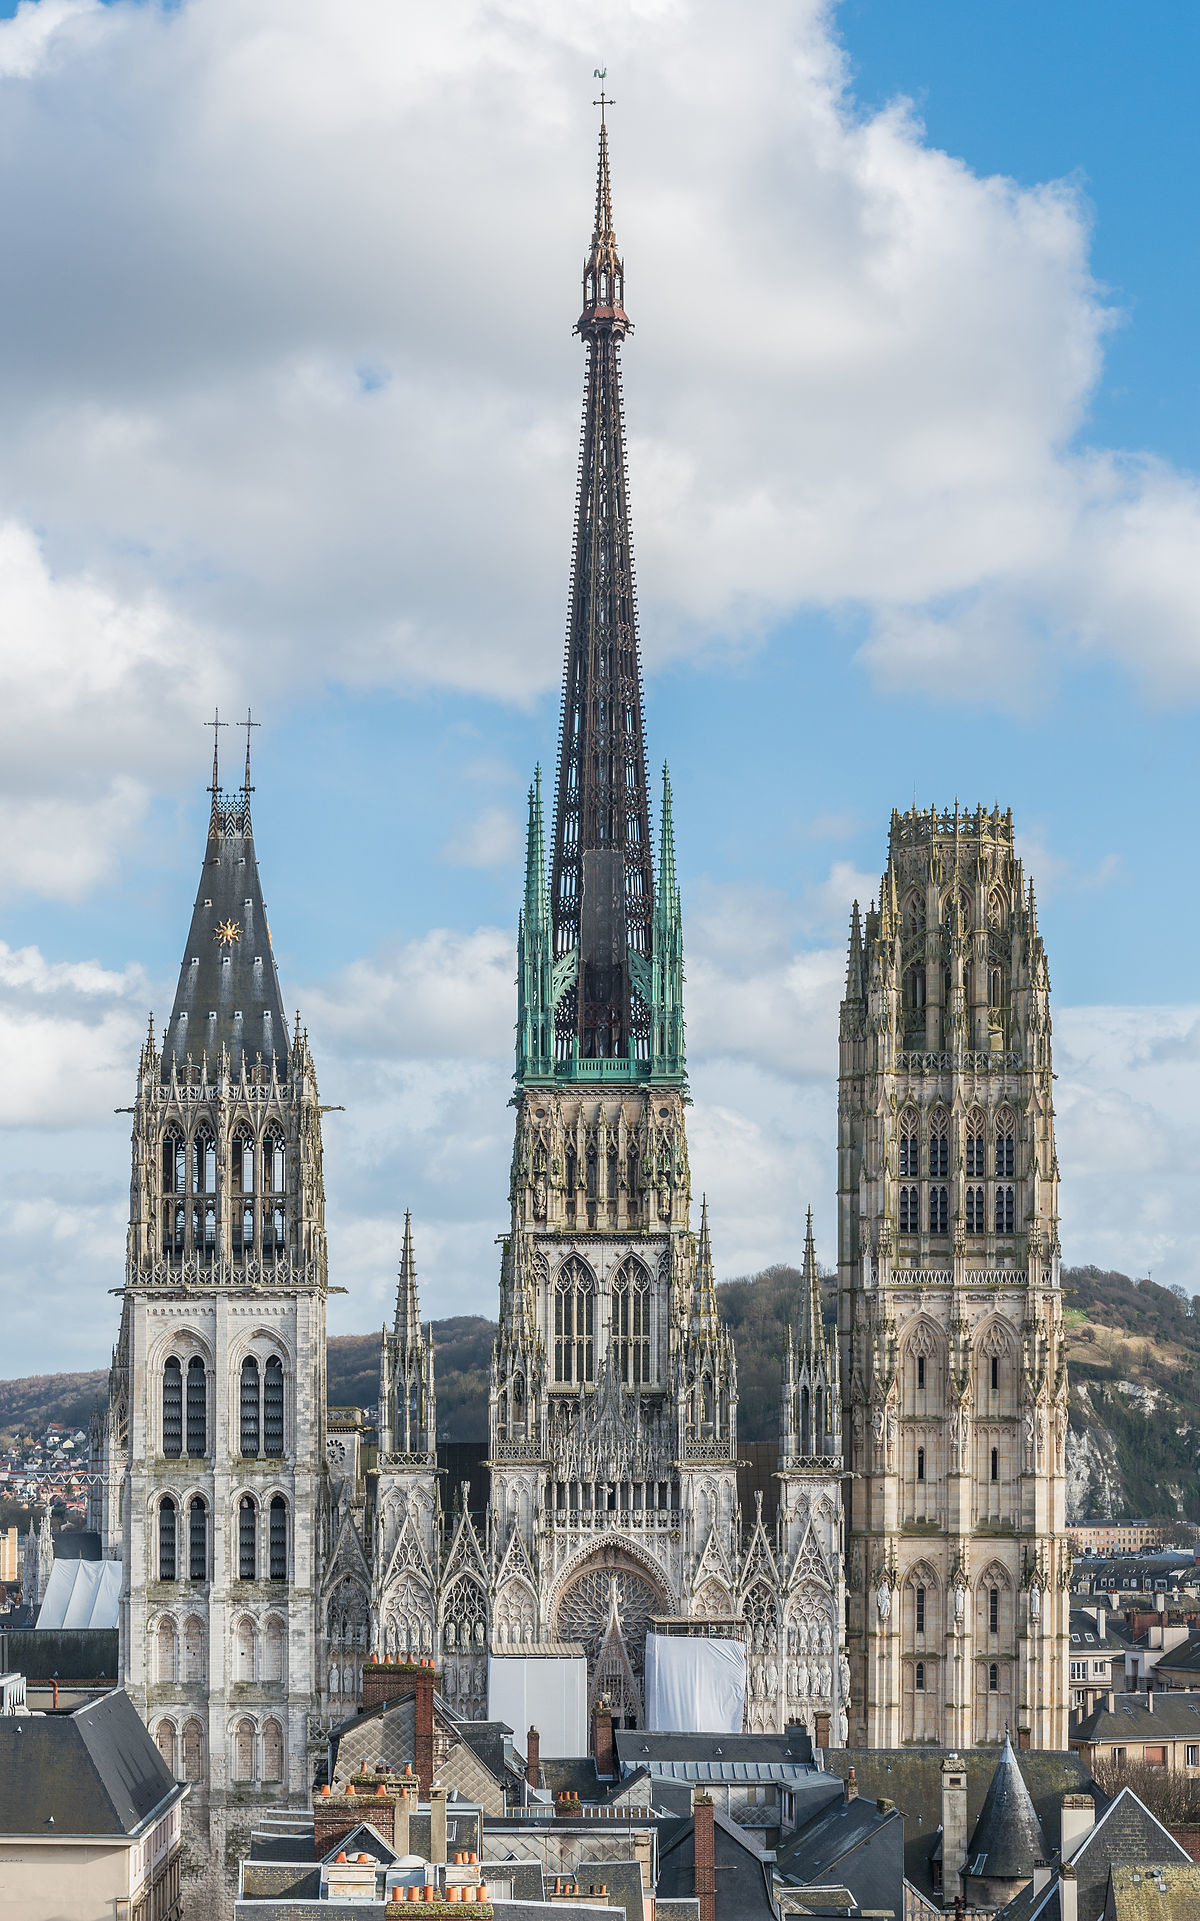 Rouen Cathedral (Rouen, France). join list: AwesomeArchitecture (77 subs)Mention History.. A testament to the creative ability of mankind... I wonder how long before someone decides they don't like, and tries to blow it up while screaming aloha snack